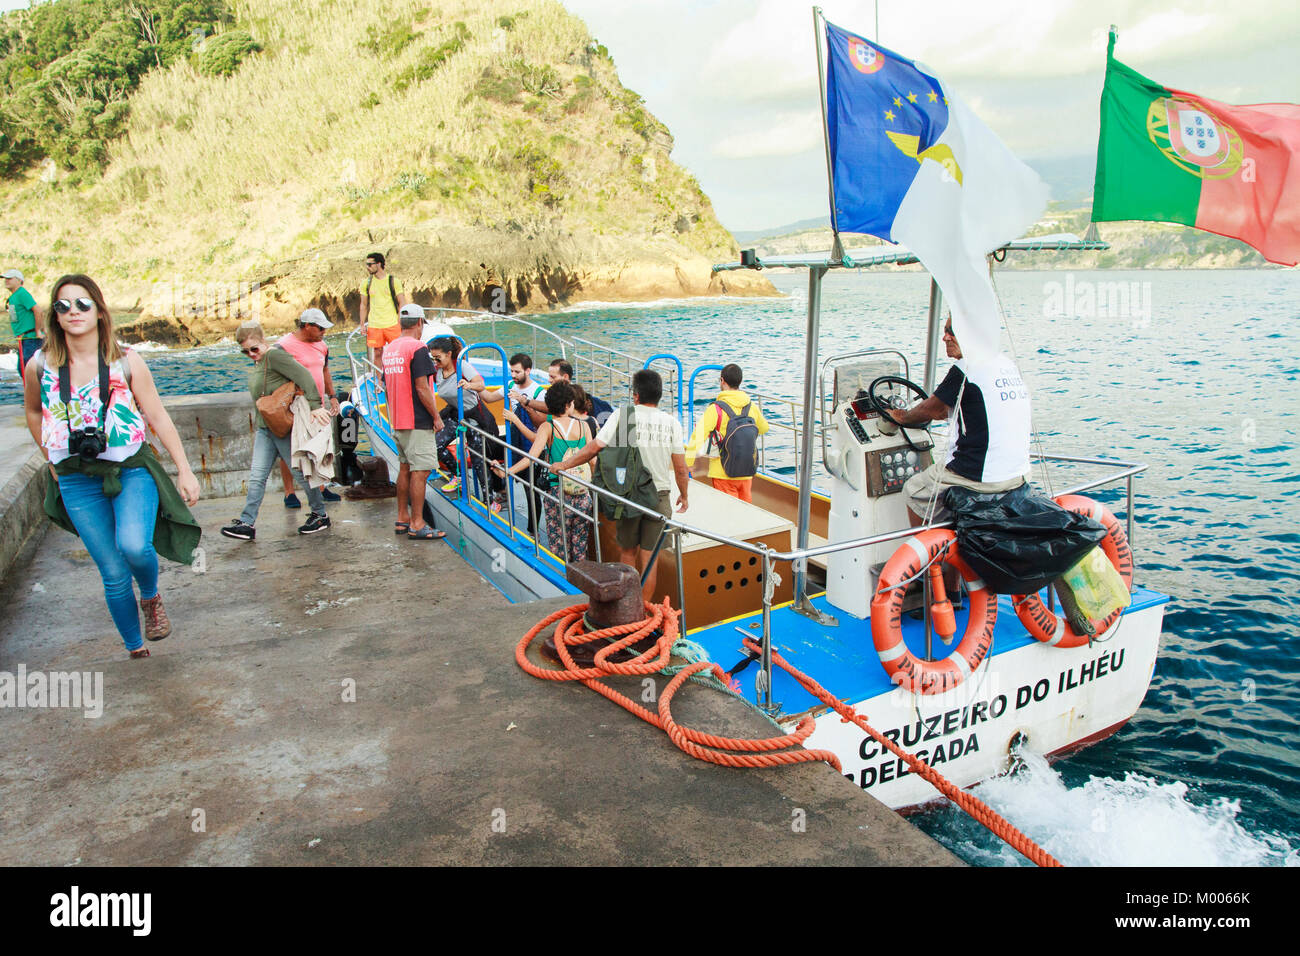 Tourists leaving the boat at islet of Vila franca do Campo at Sao Miguel, Azores, Portugal - Stock Image